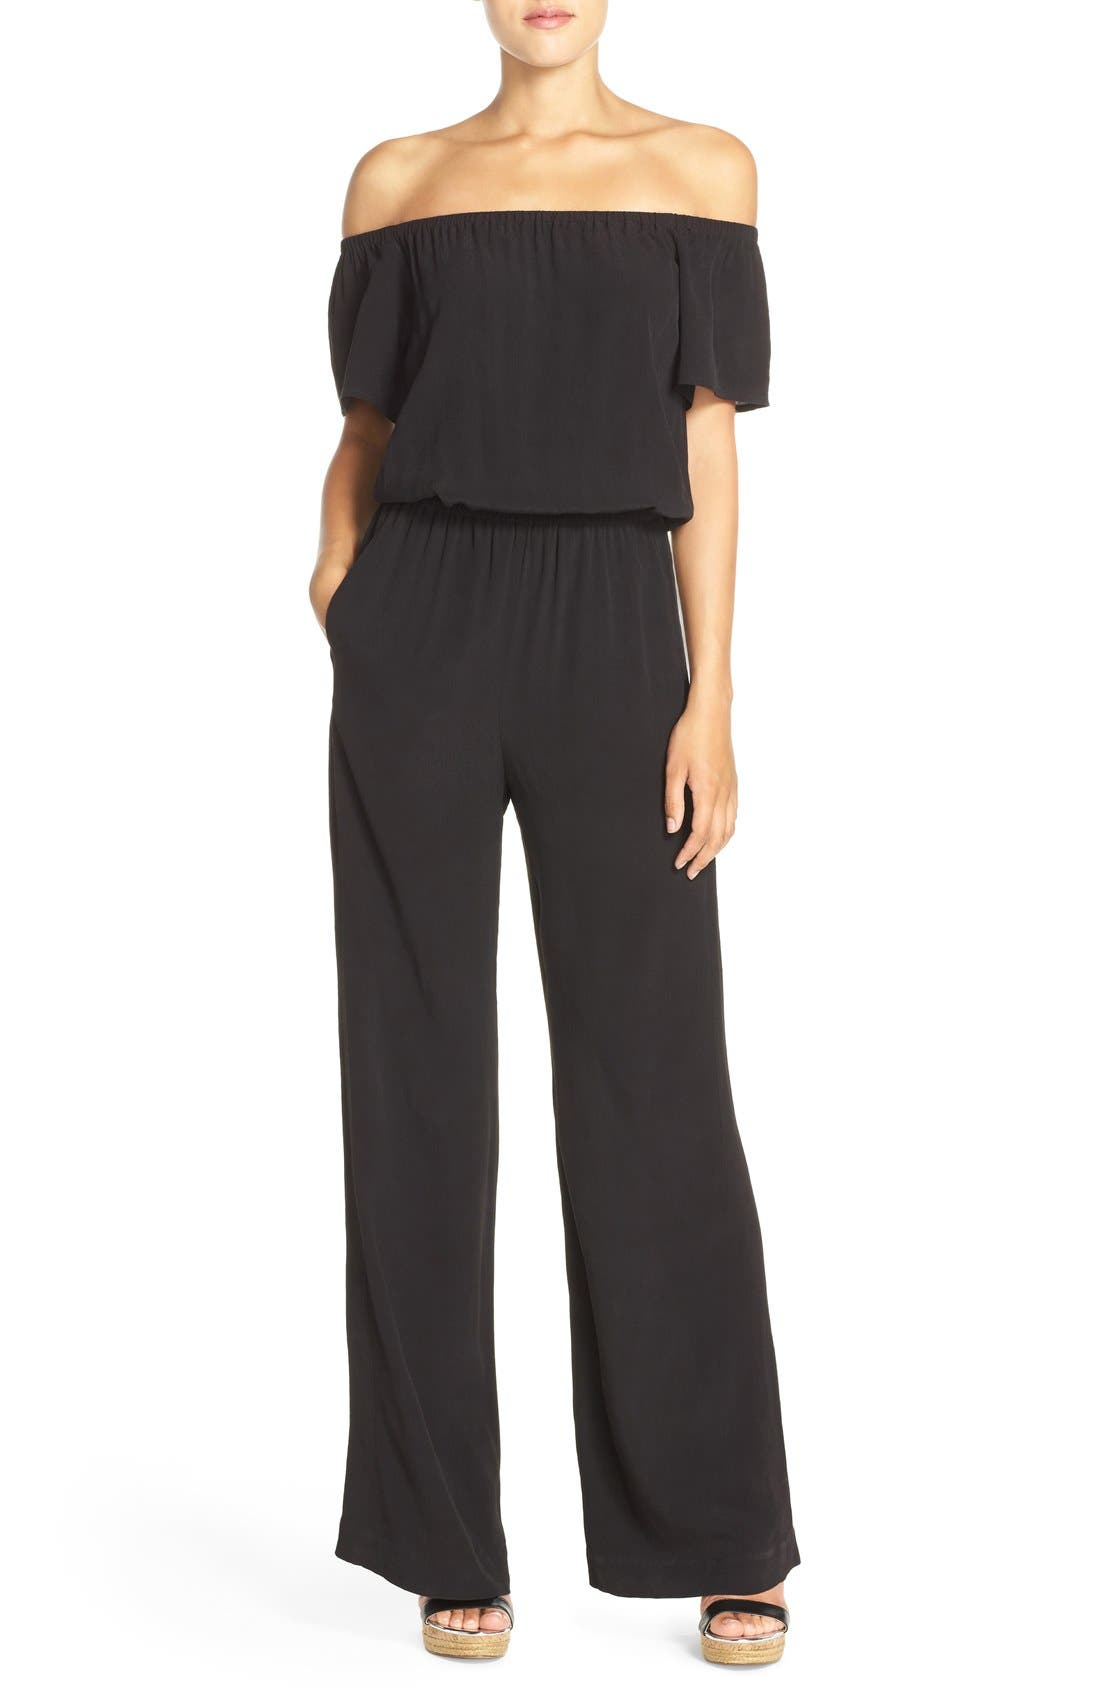 CHARLES HENRY, Off the Shoulder Wide Leg Jumpsuit, Main thumbnail 1, color, BLACK